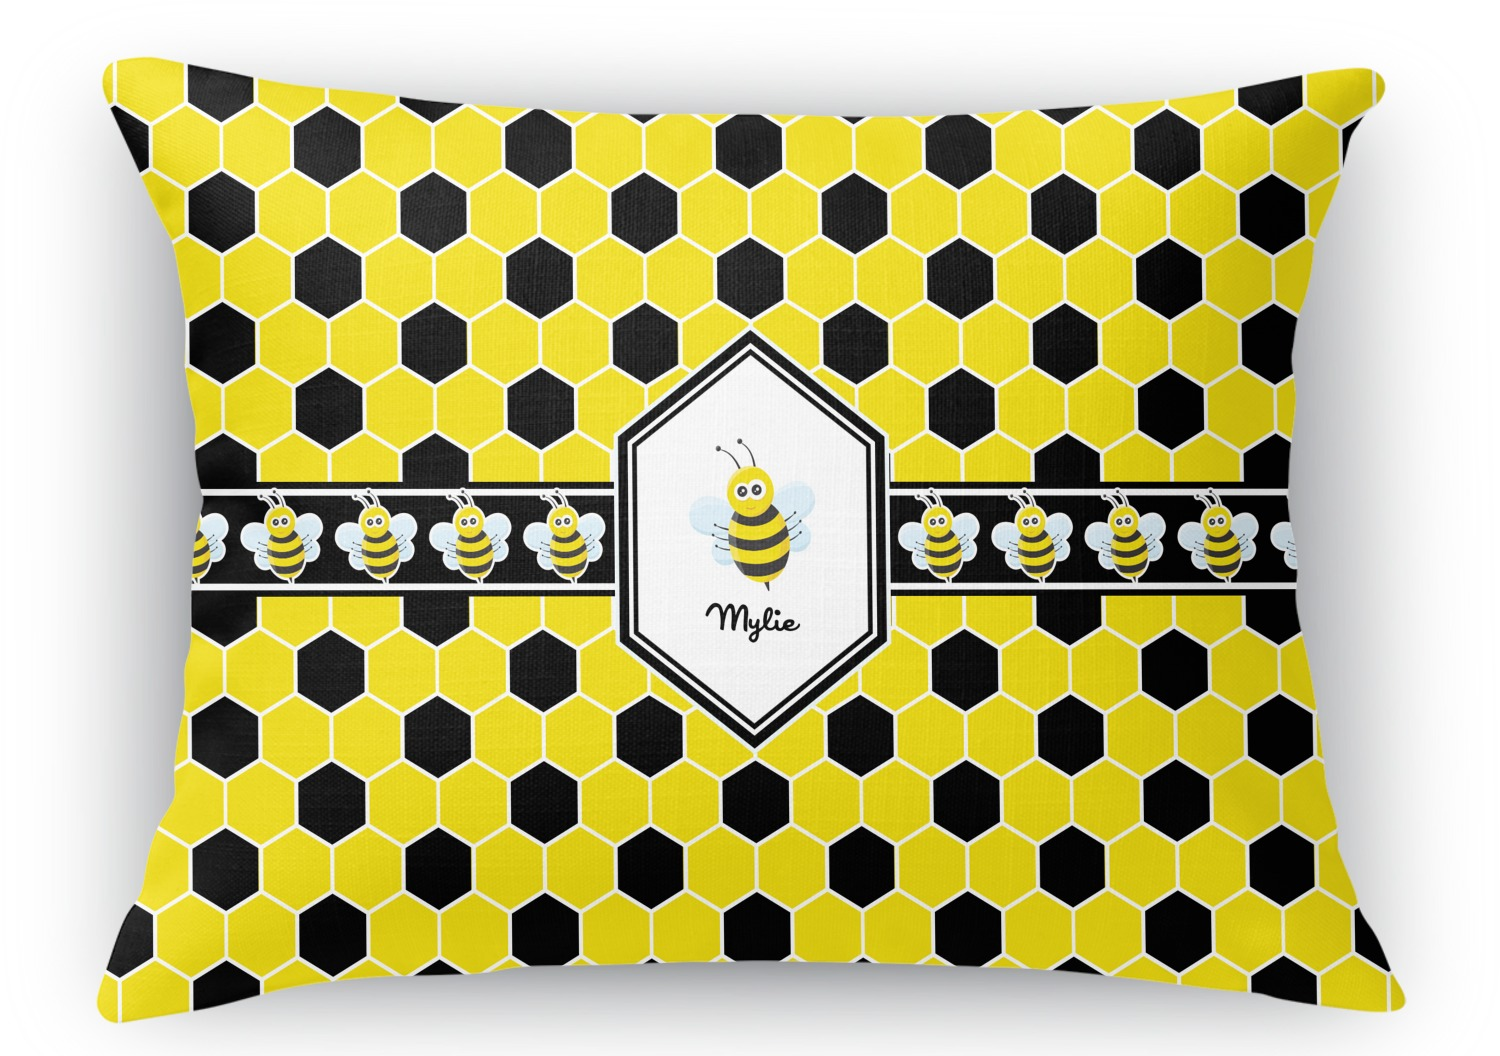 Rectangular Throw Pillow Dimensions : Honeycomb Rectangular Throw Pillow - 18